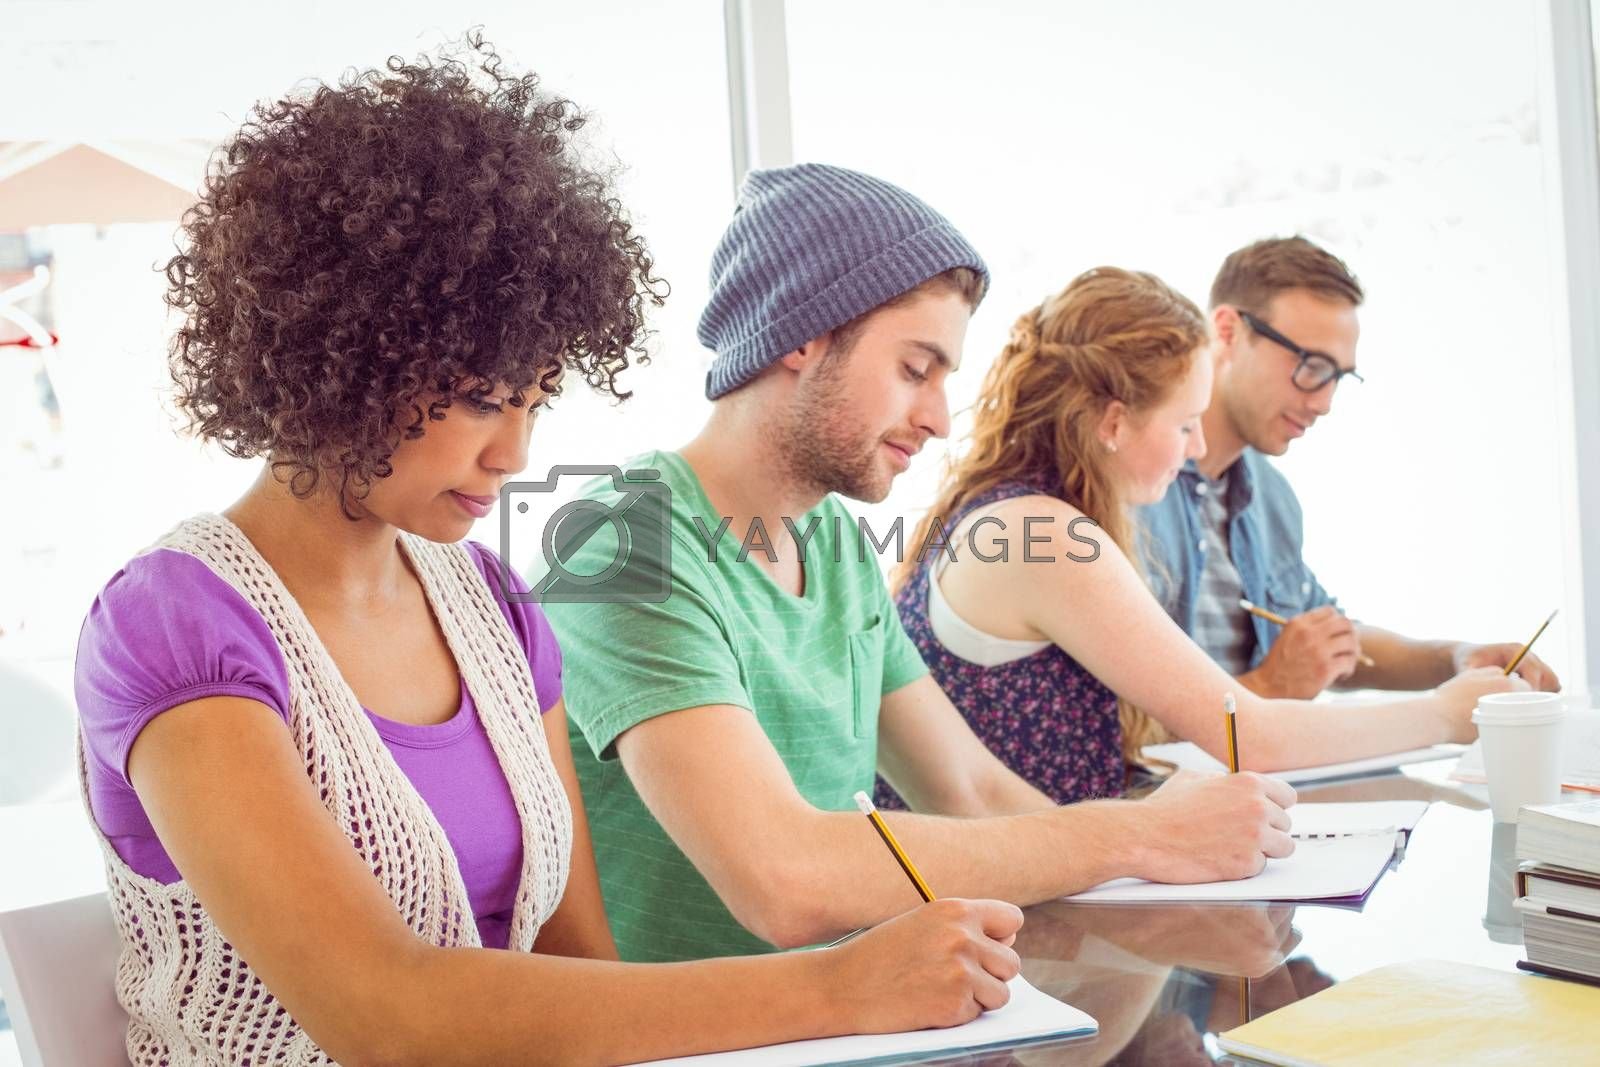 Fashion students writing on notepad  by Wavebreakmedia